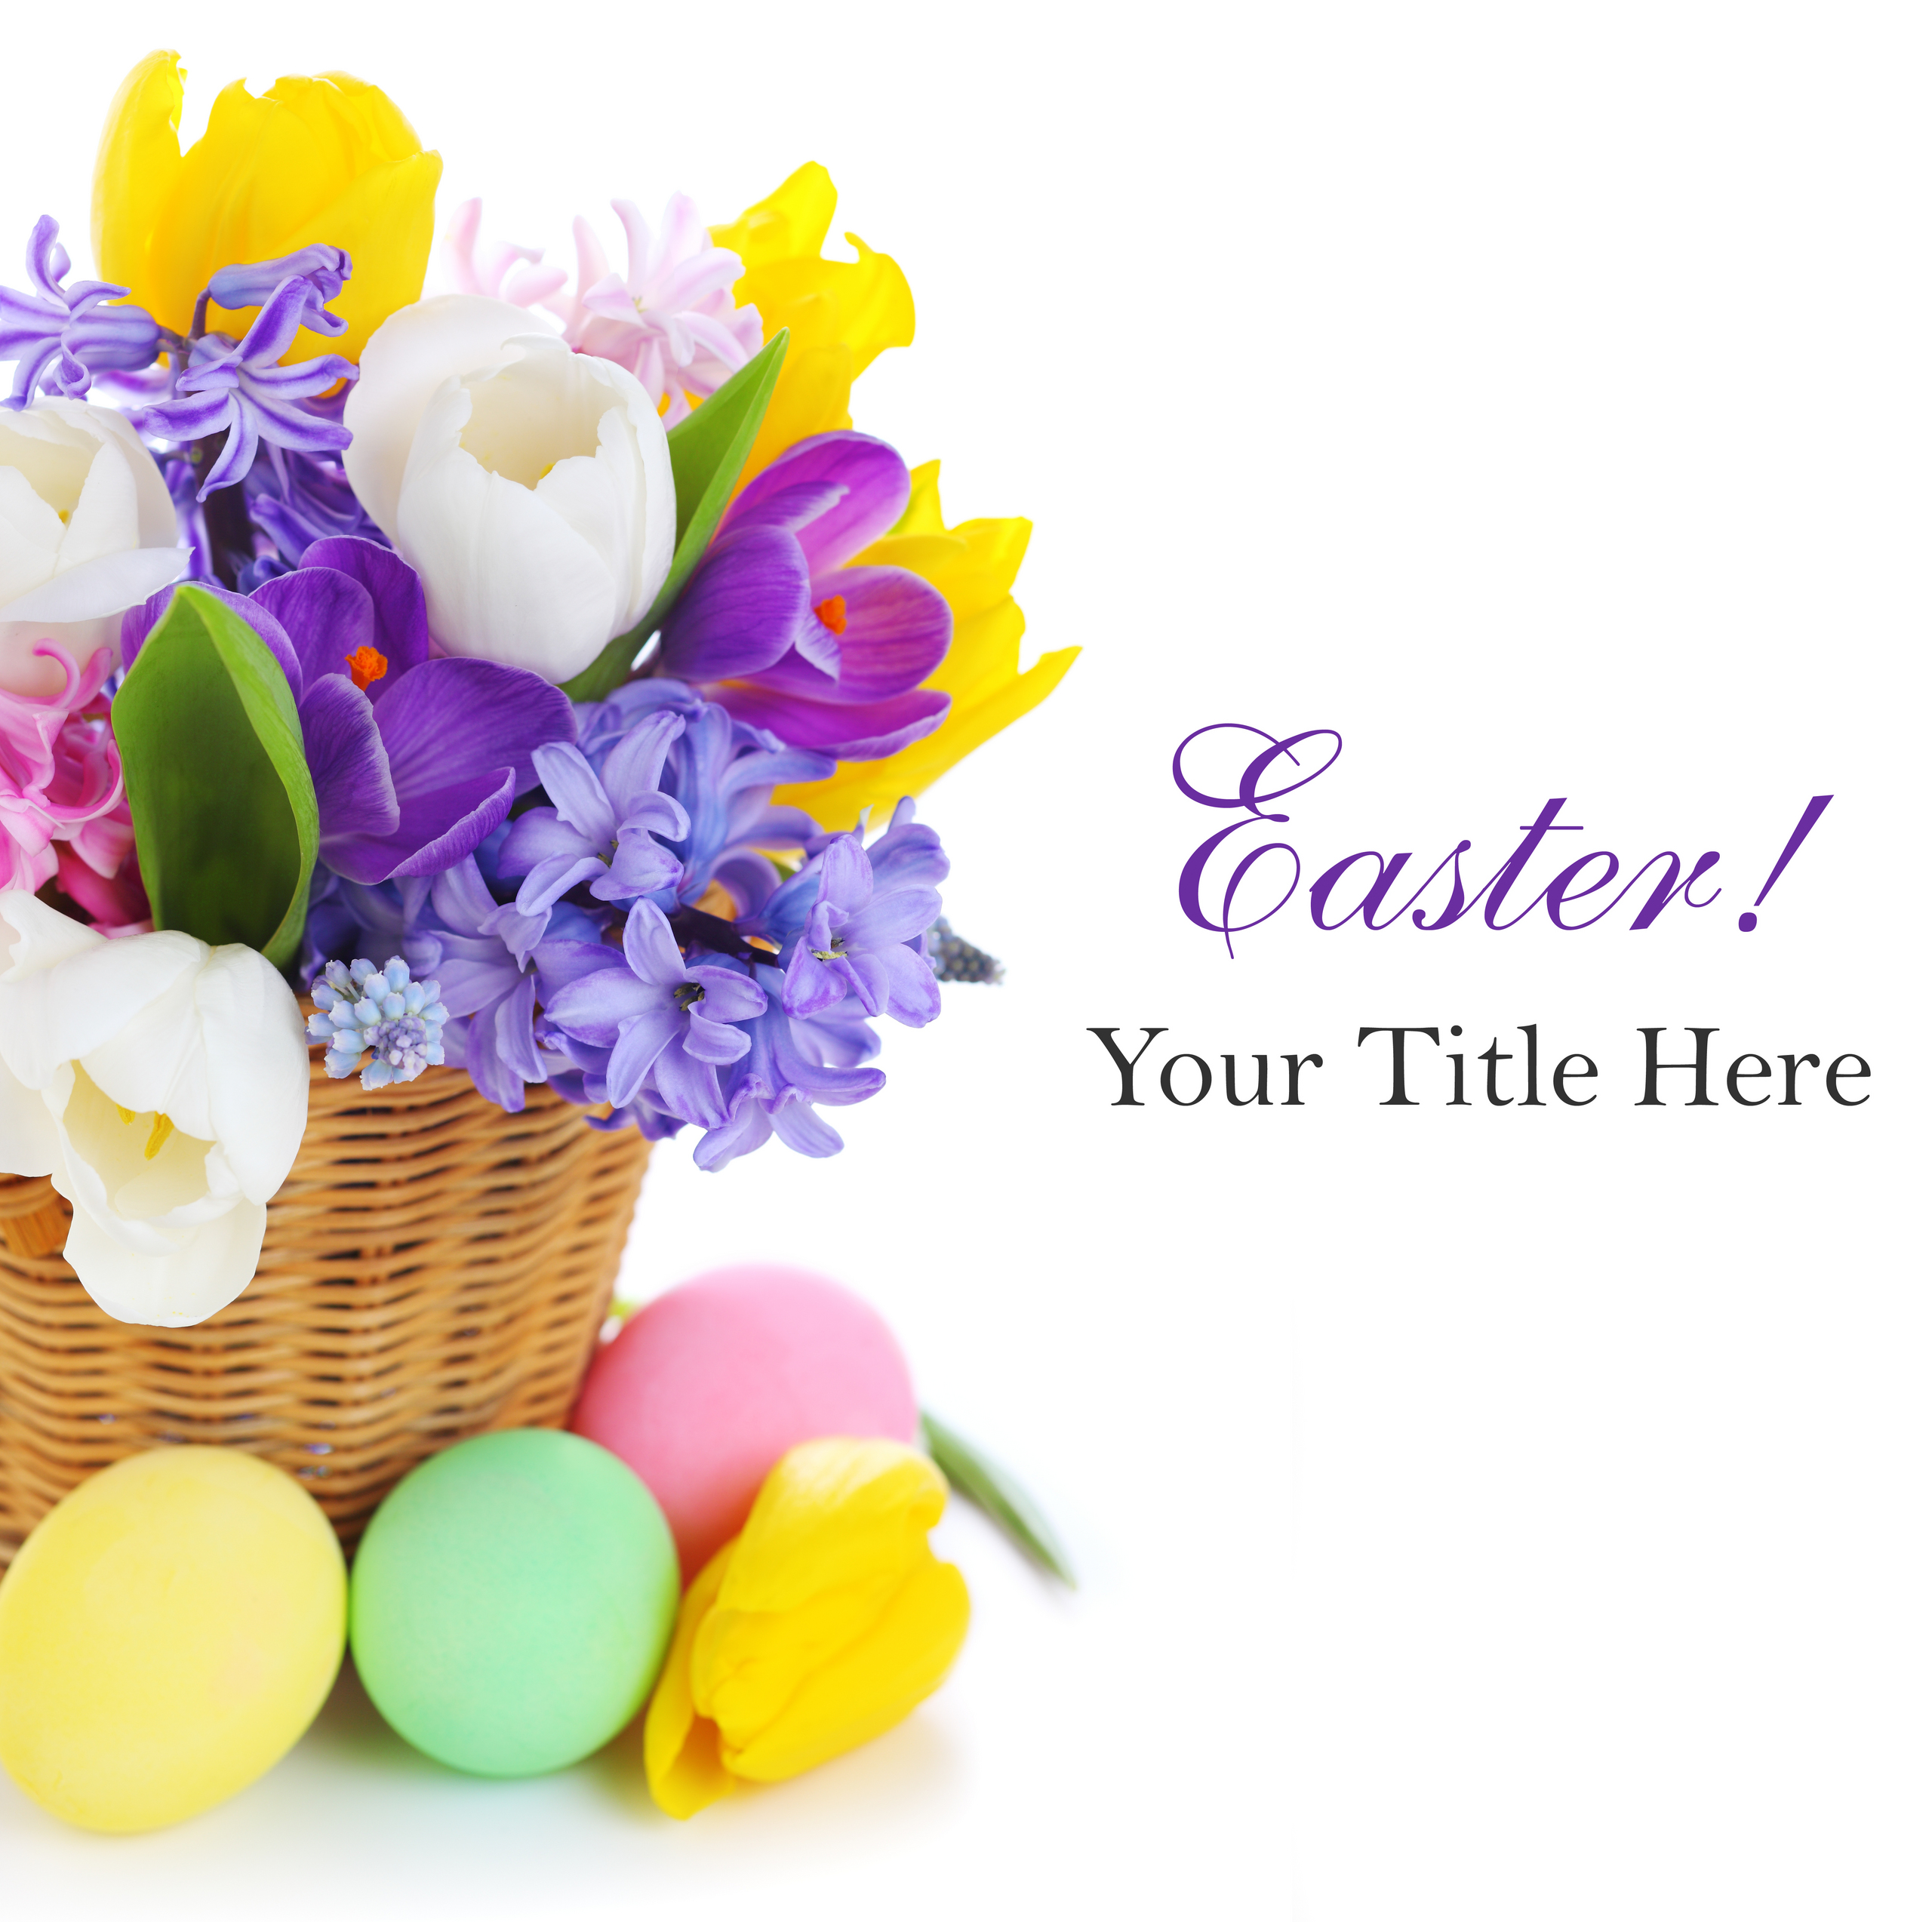 Easter images Easter greeting card HD wallpaper and background 2560x2547